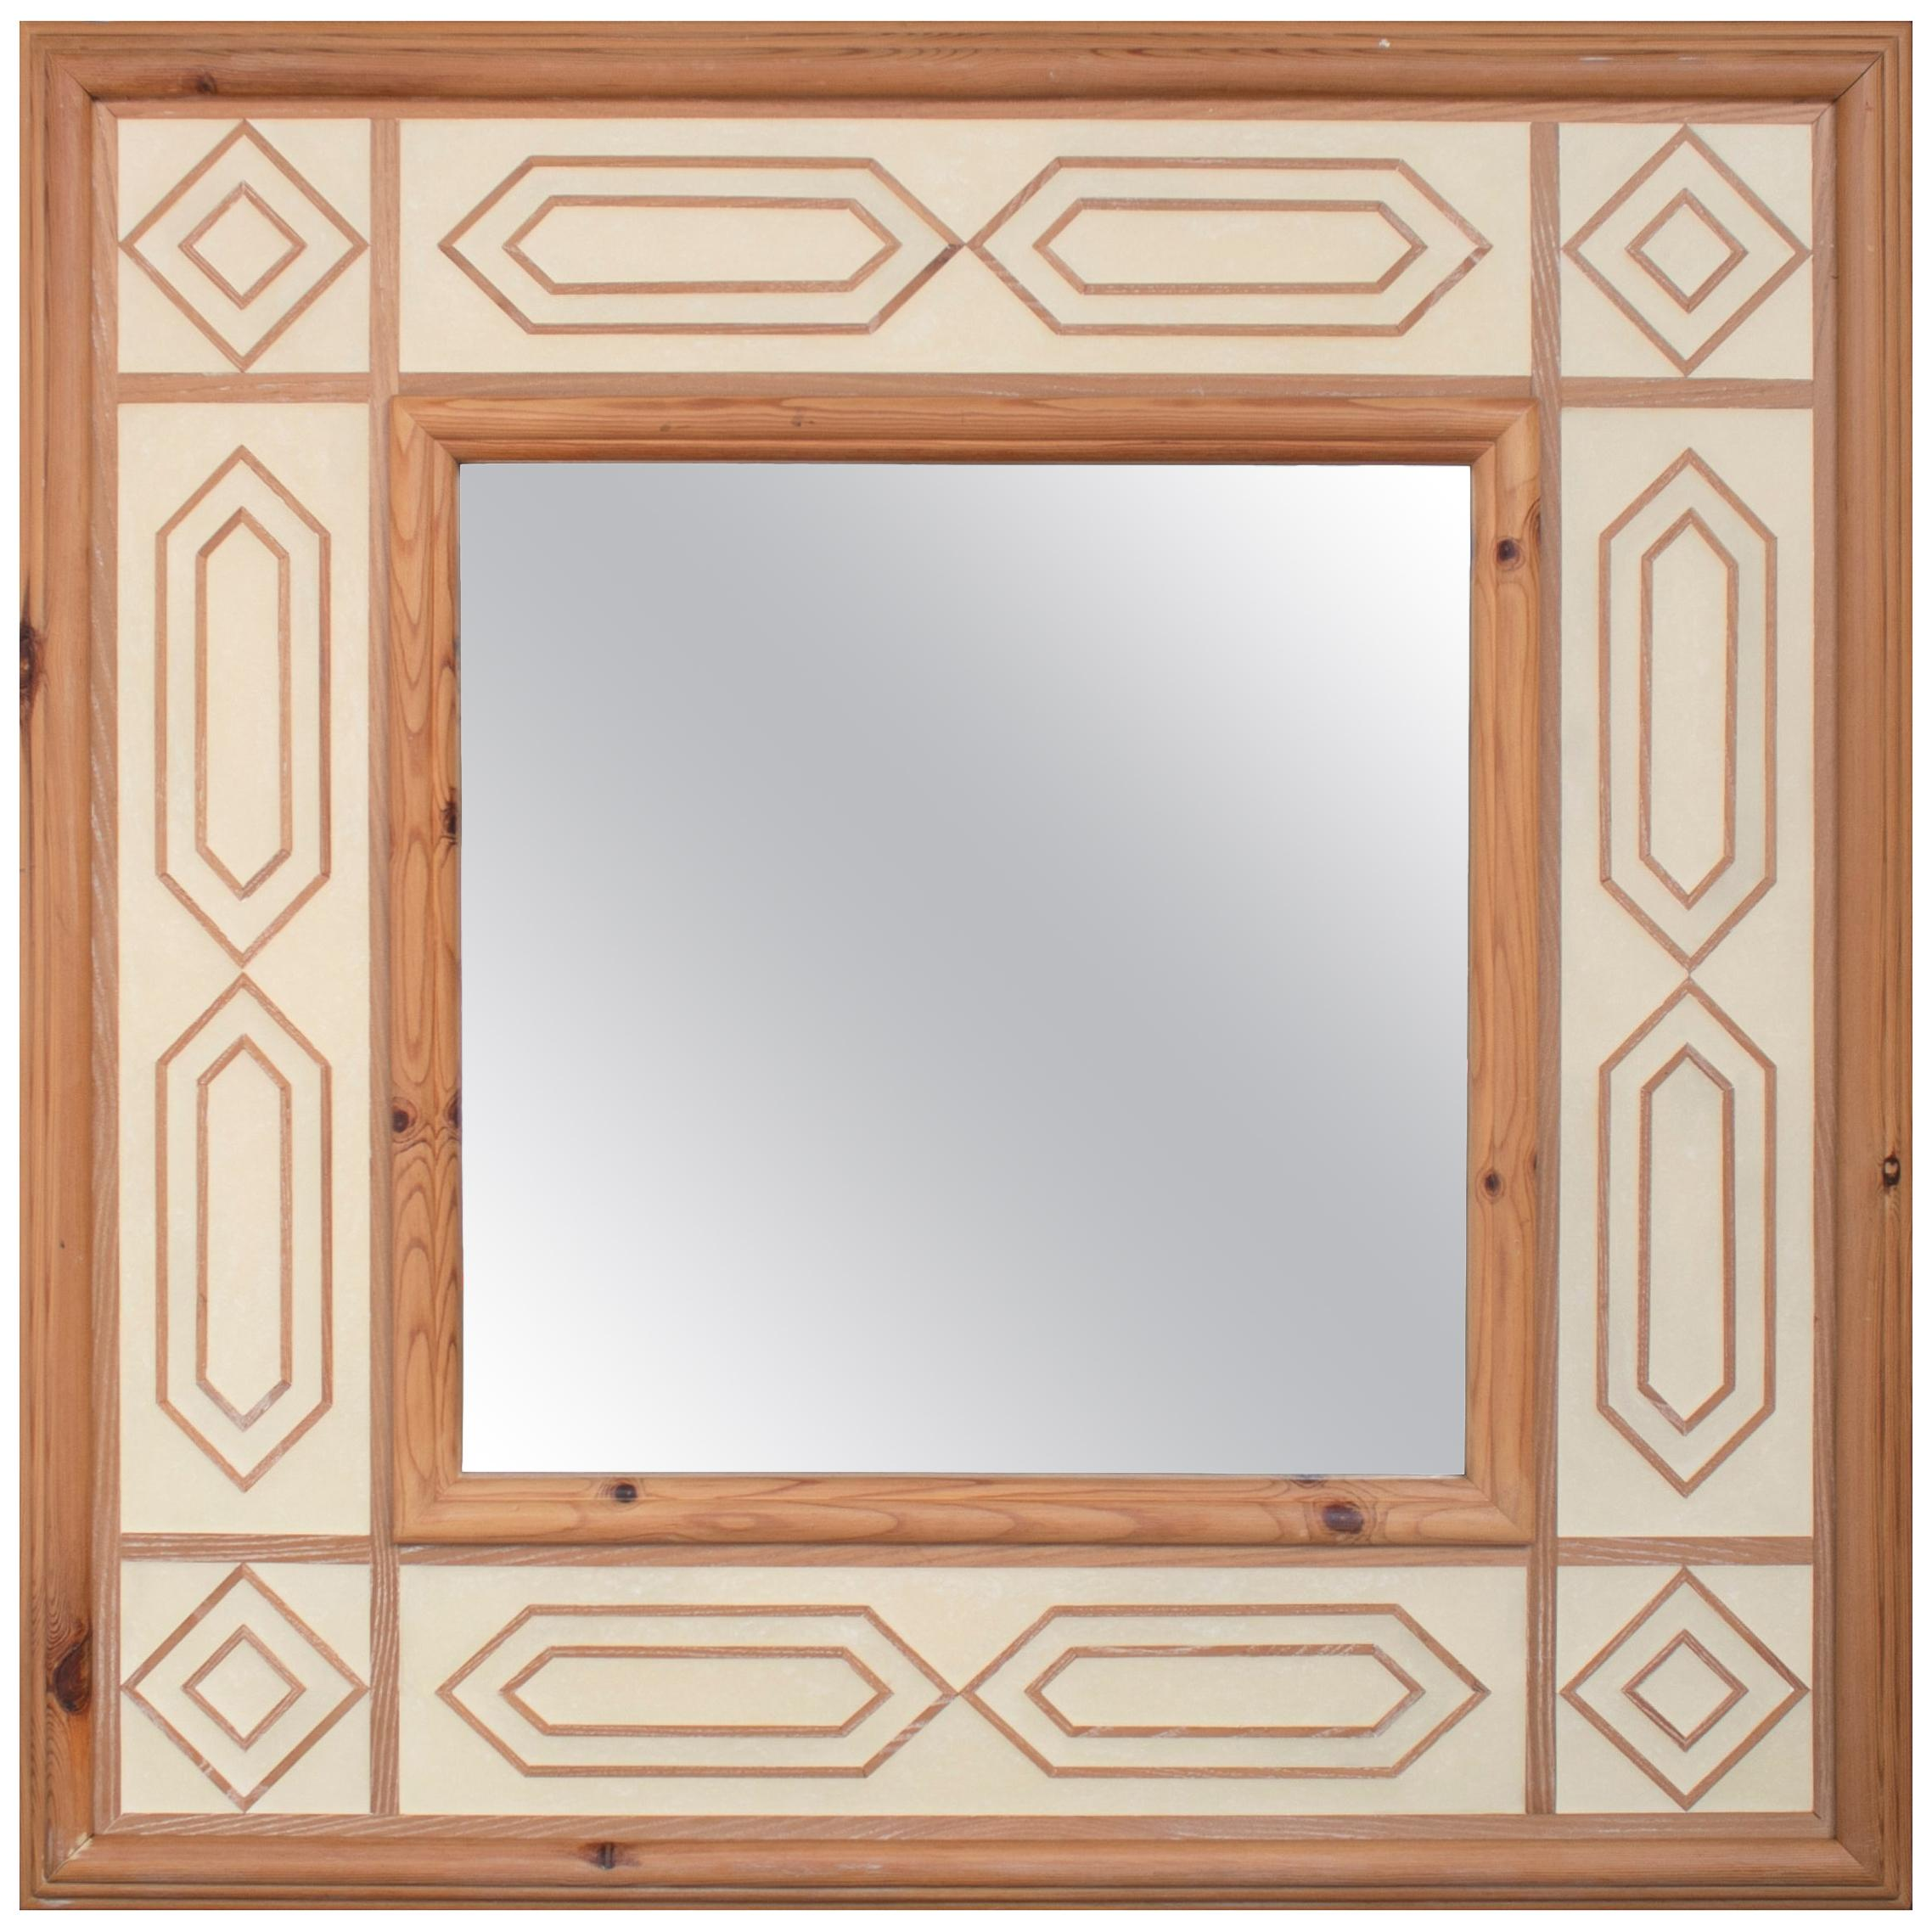 1970s Spanish Wooden Mirror Frame with Geometric Decoration